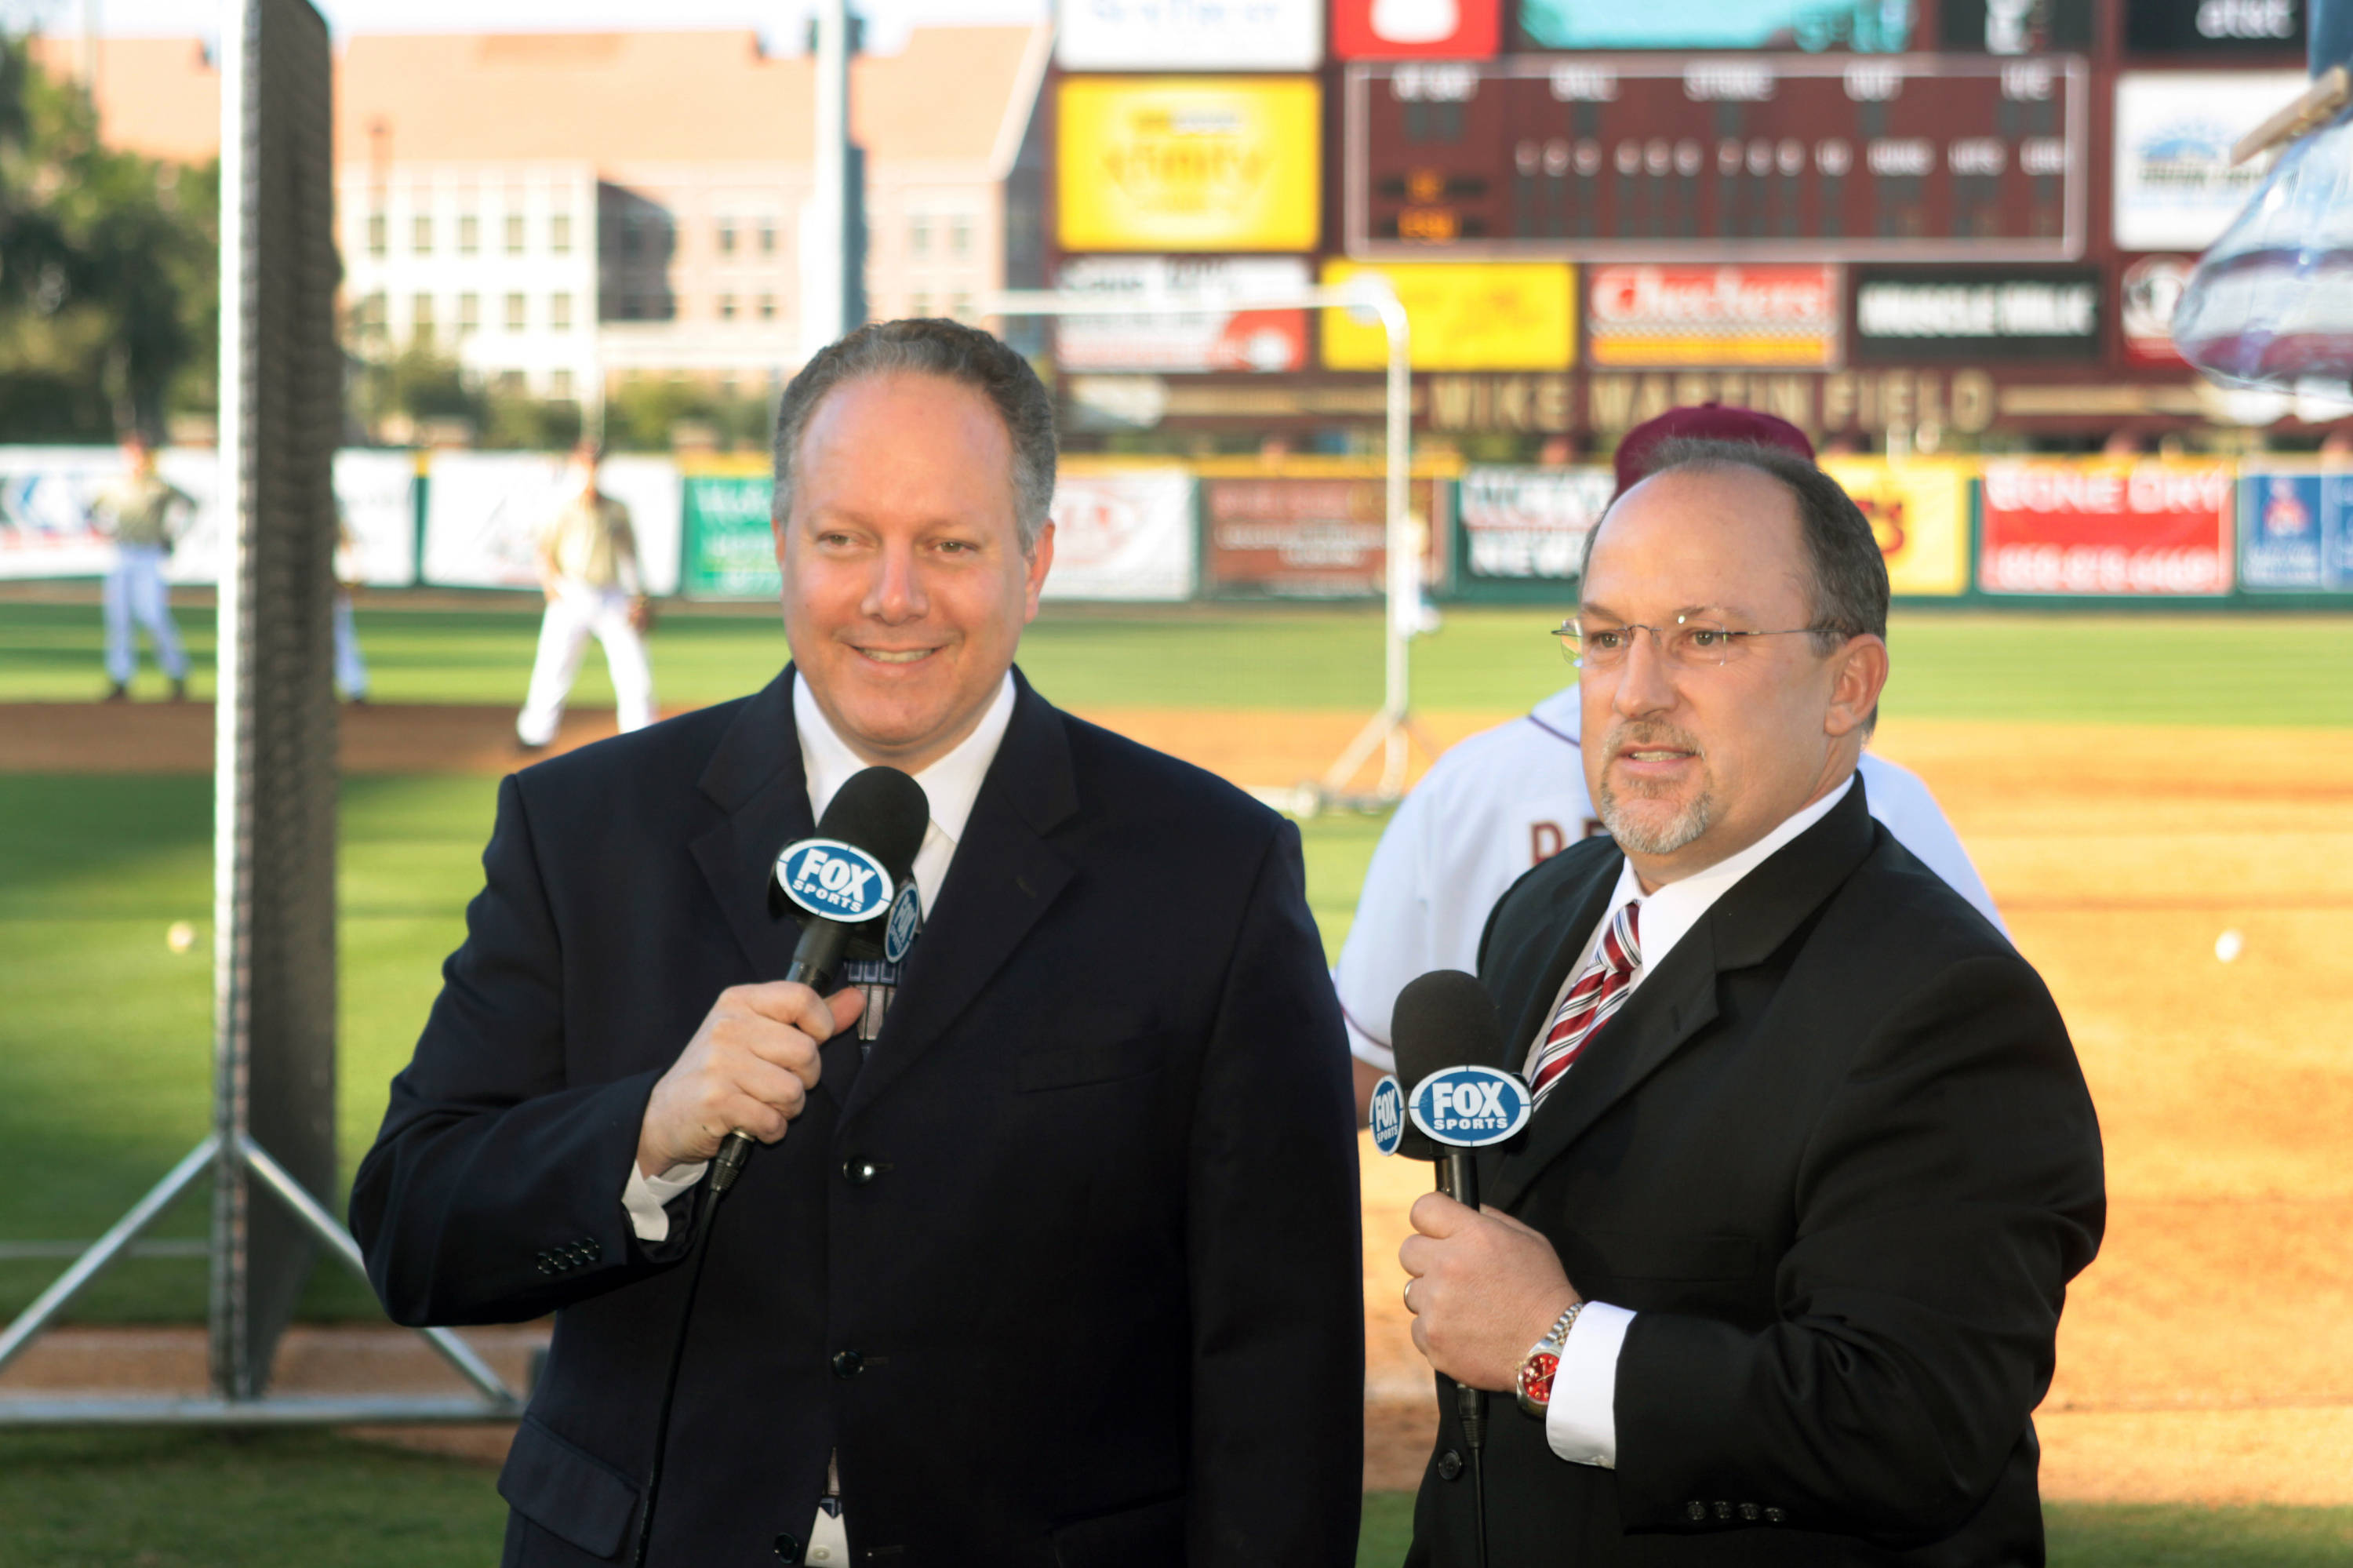 Chip Baker (right) made his TV debut, complete with make-up, and an assist from Tom Block.